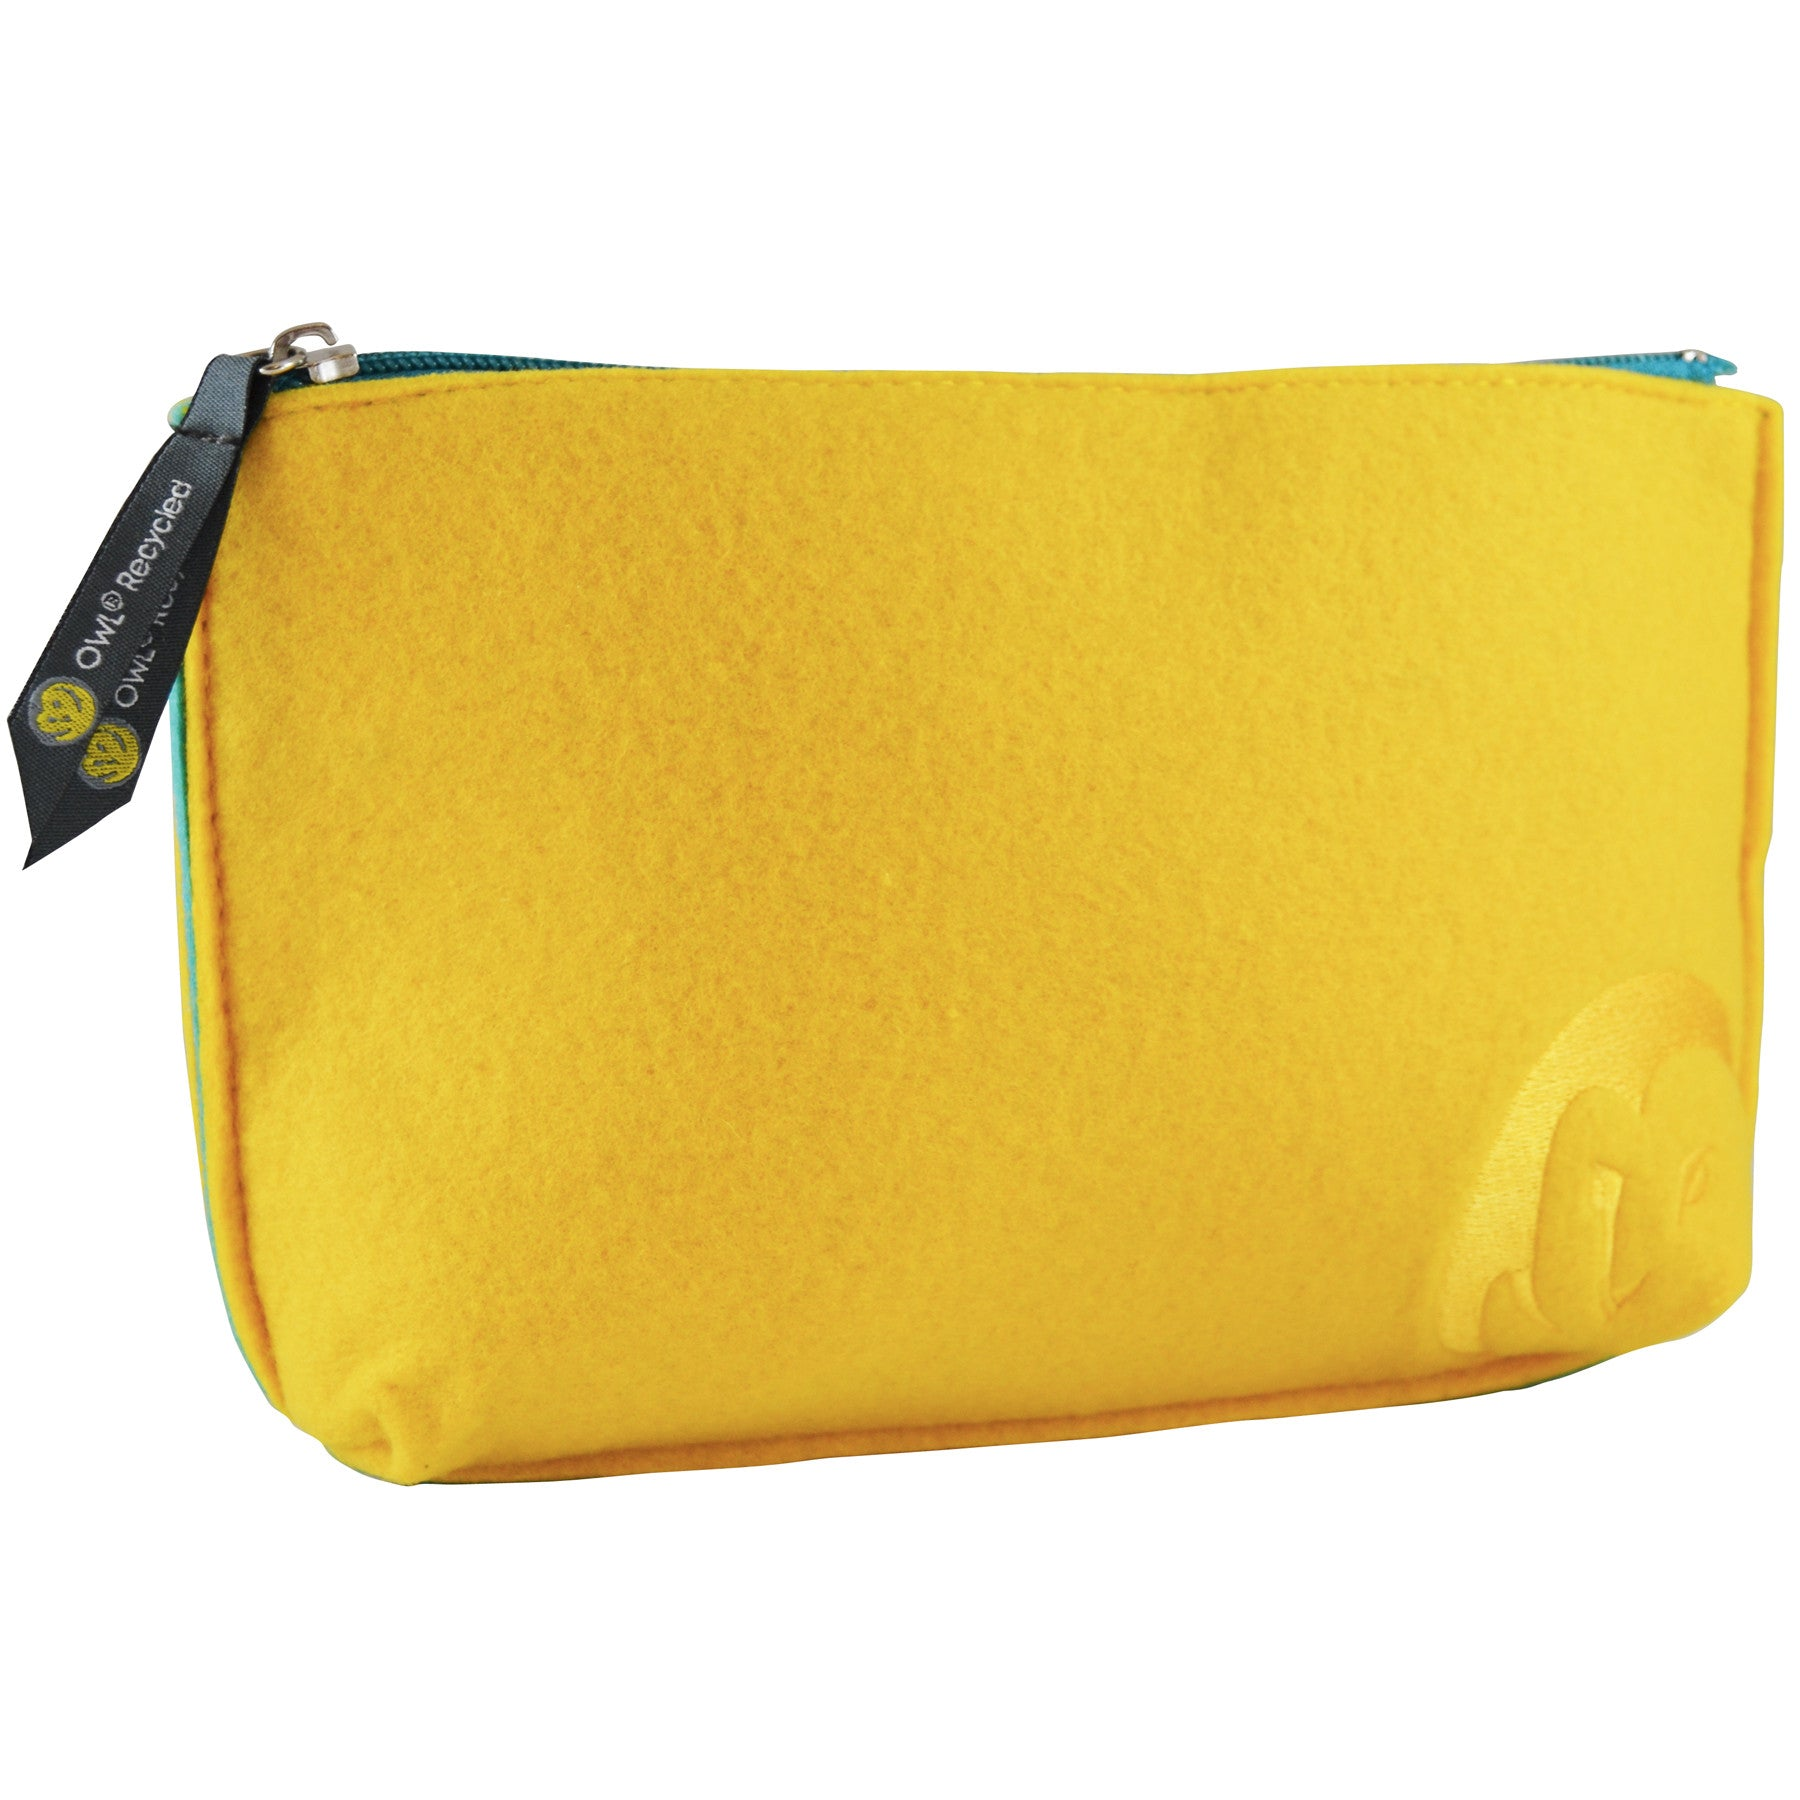 Felt Zip-Top Pouch - Dandelion - 100% Recycled Water Bottles